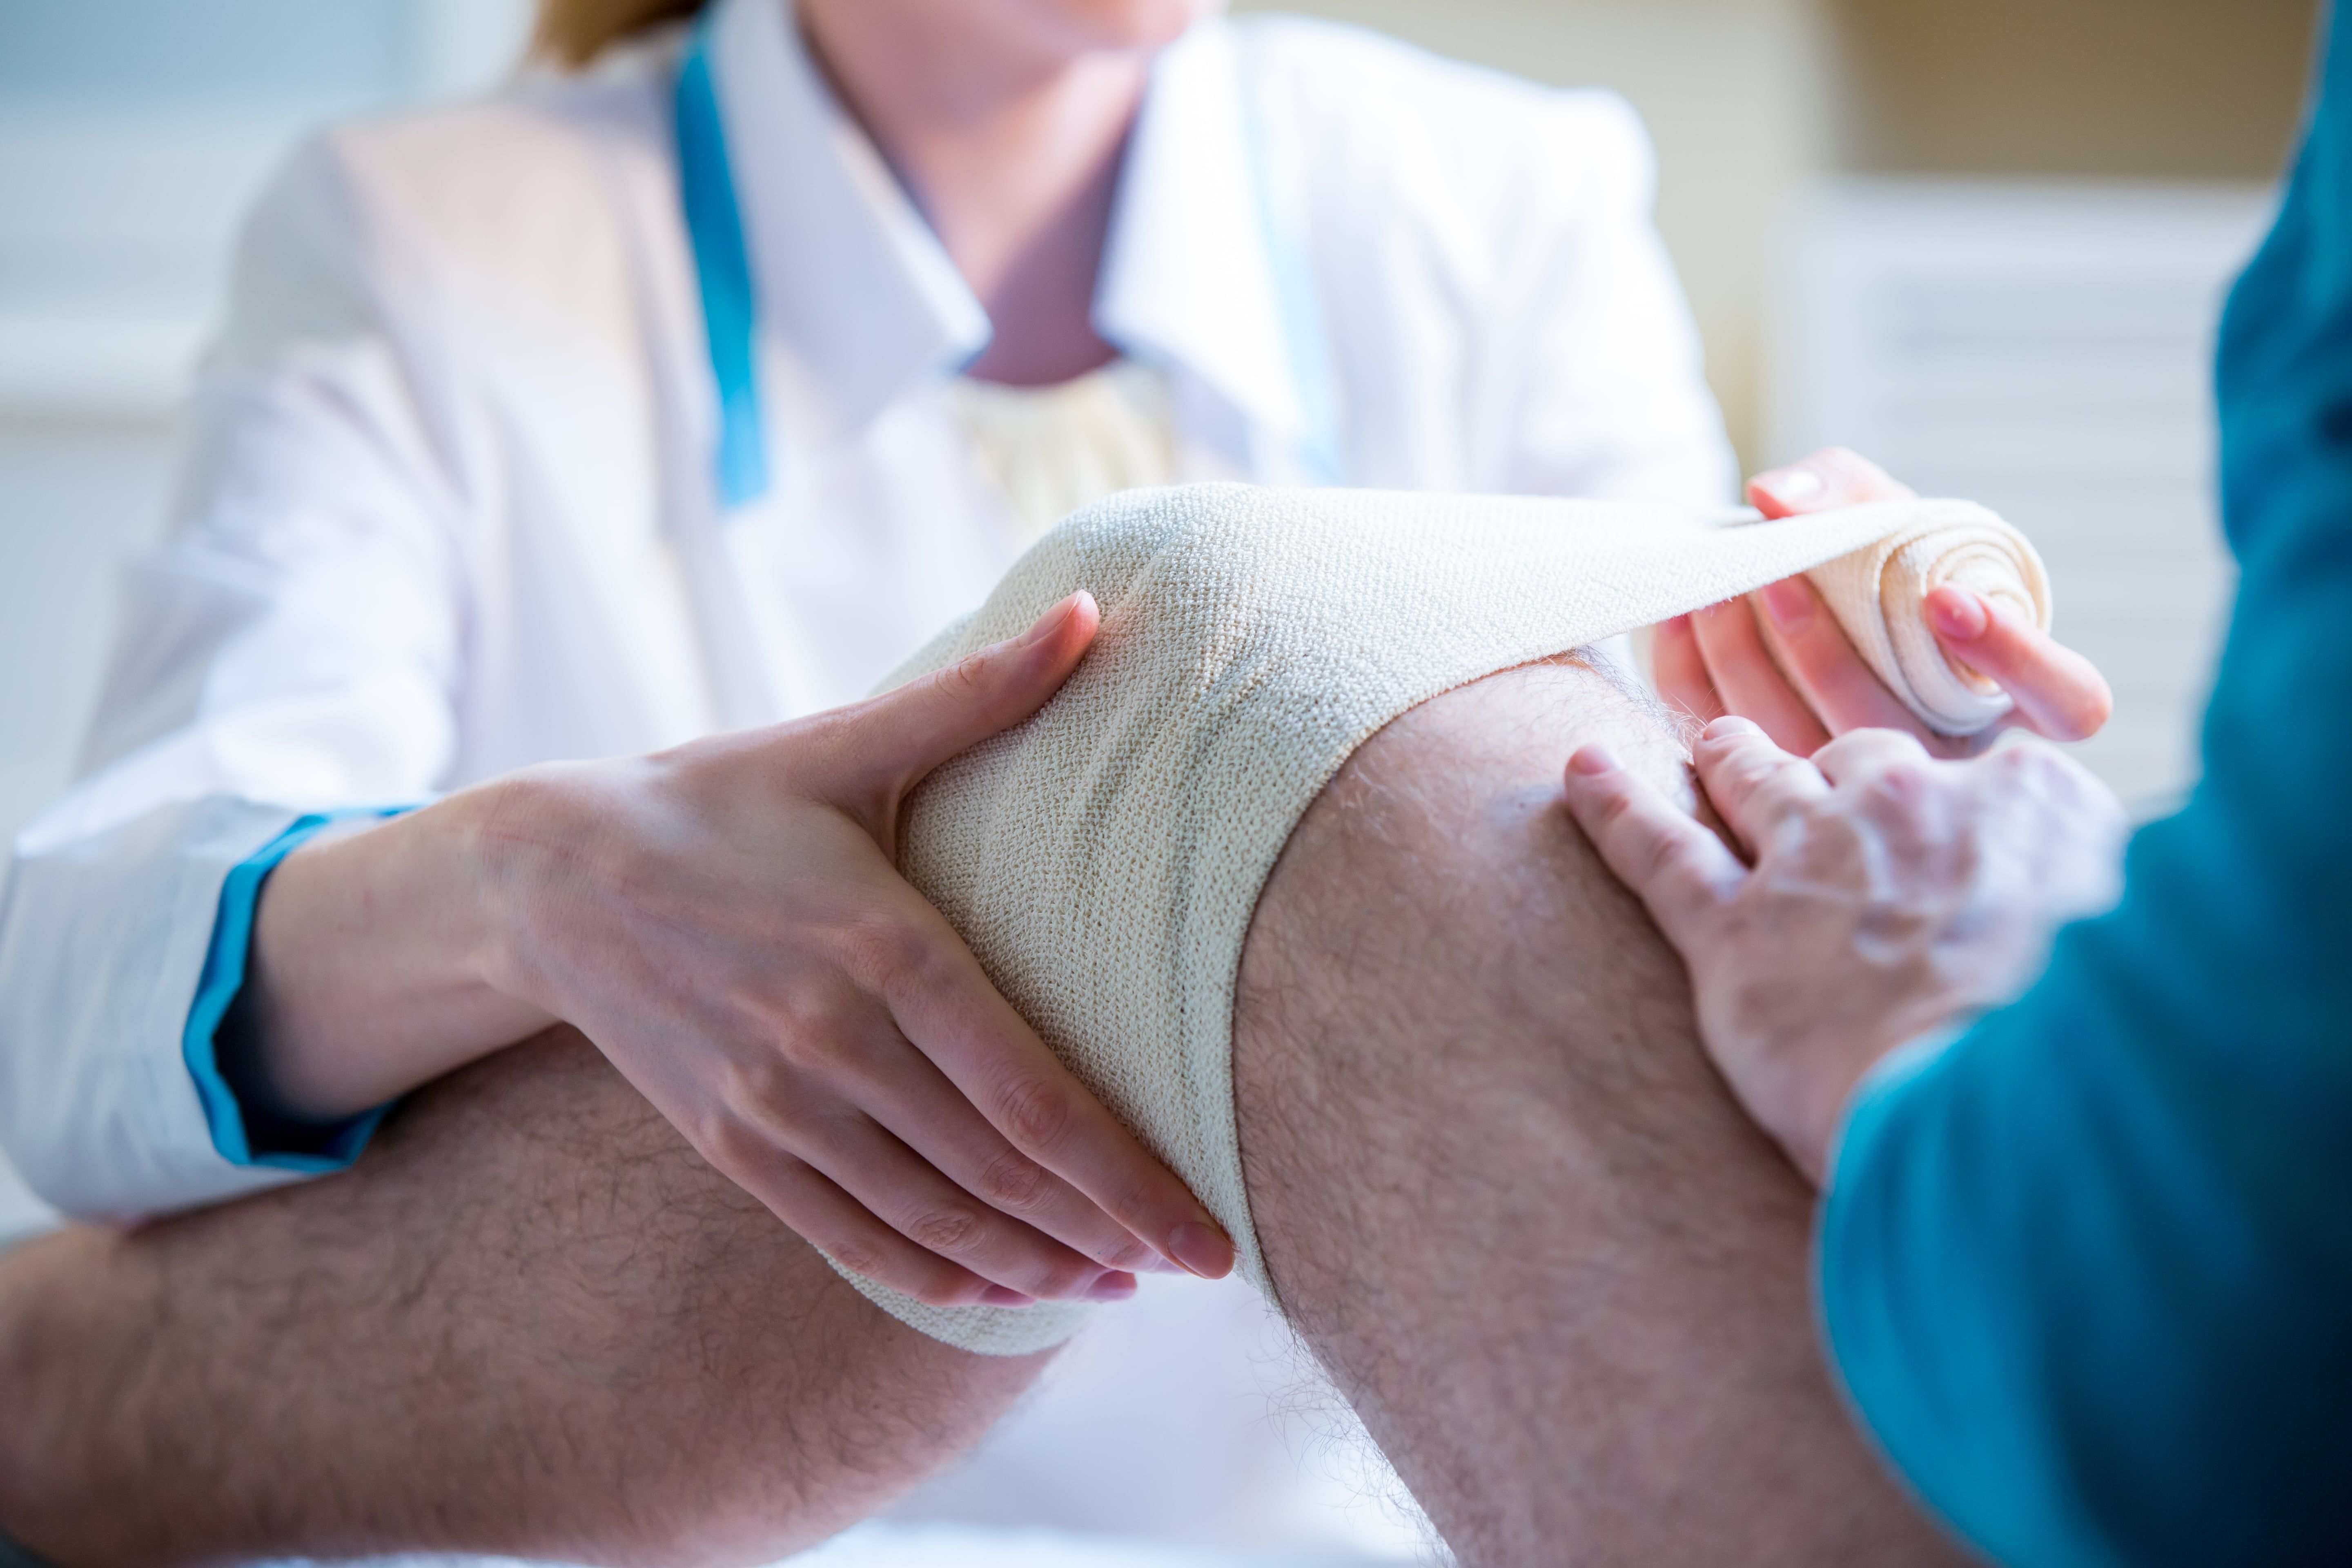 Doctor putting bandage on the patient's knee injury.